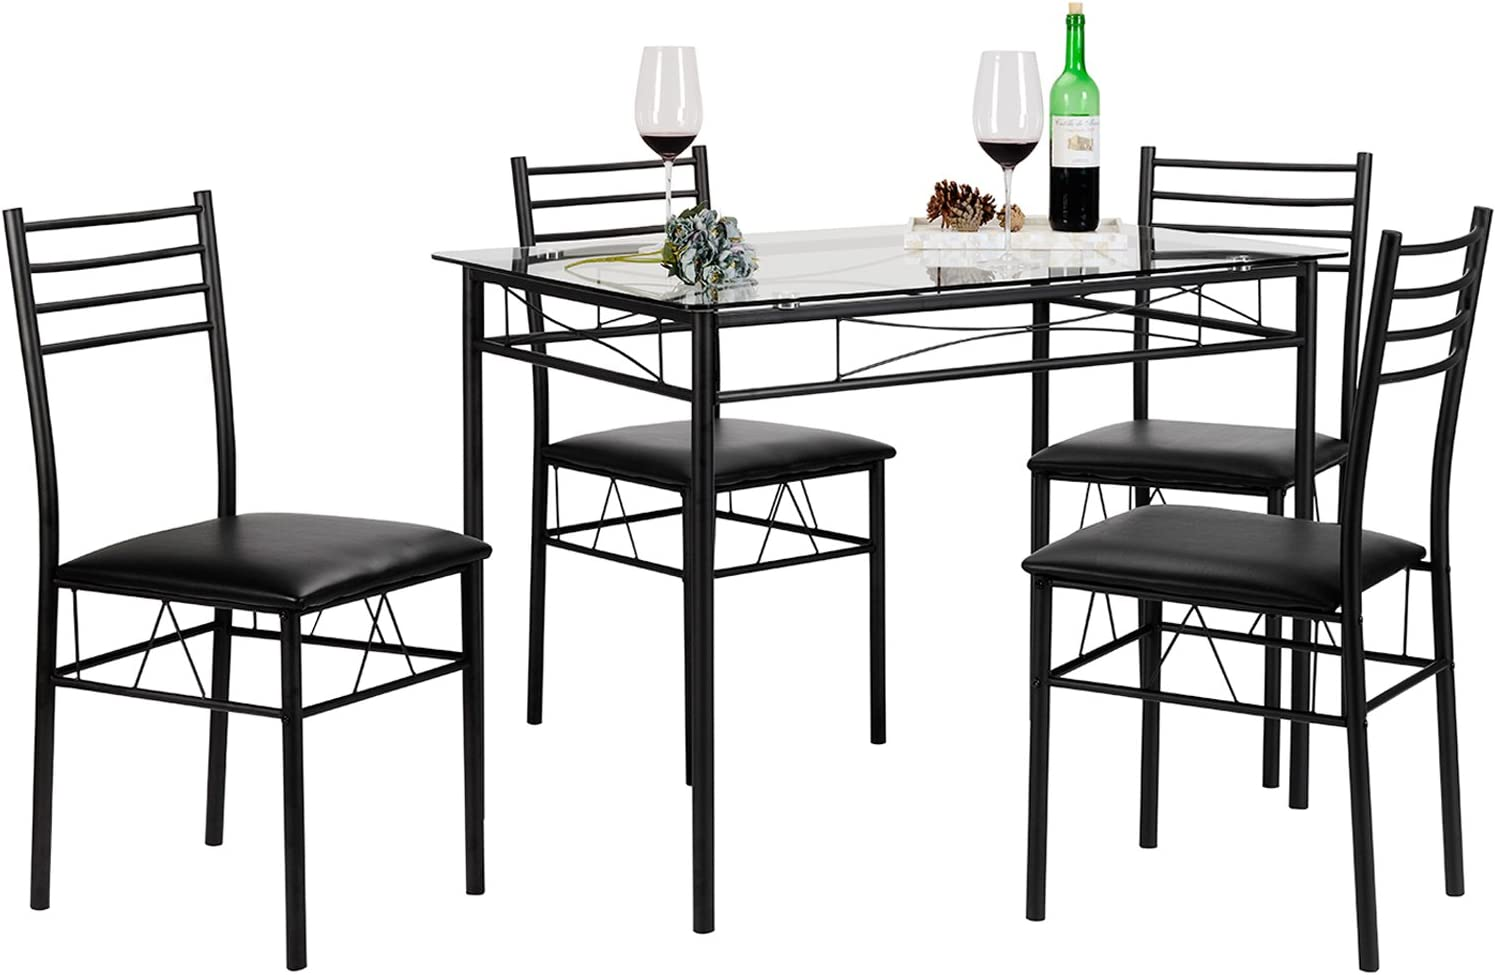 VECELO Dining Table with 4 Chairs Black  sc 1 st  Amazon.com & Table \u0026 Chair Sets | Amazon.com